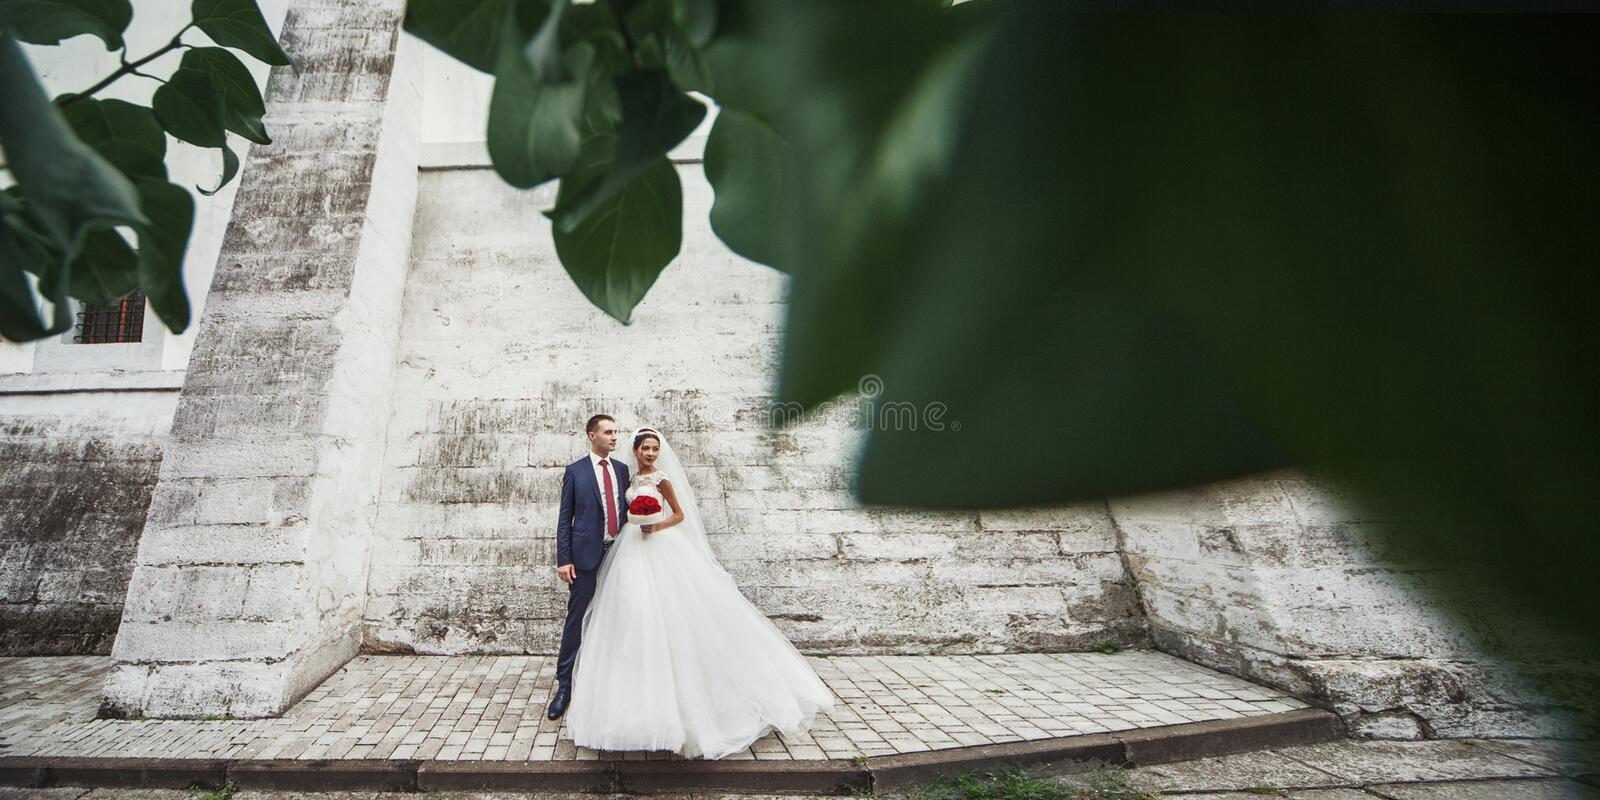 Newlywed romantic couple posing together near old castle wall in stock image